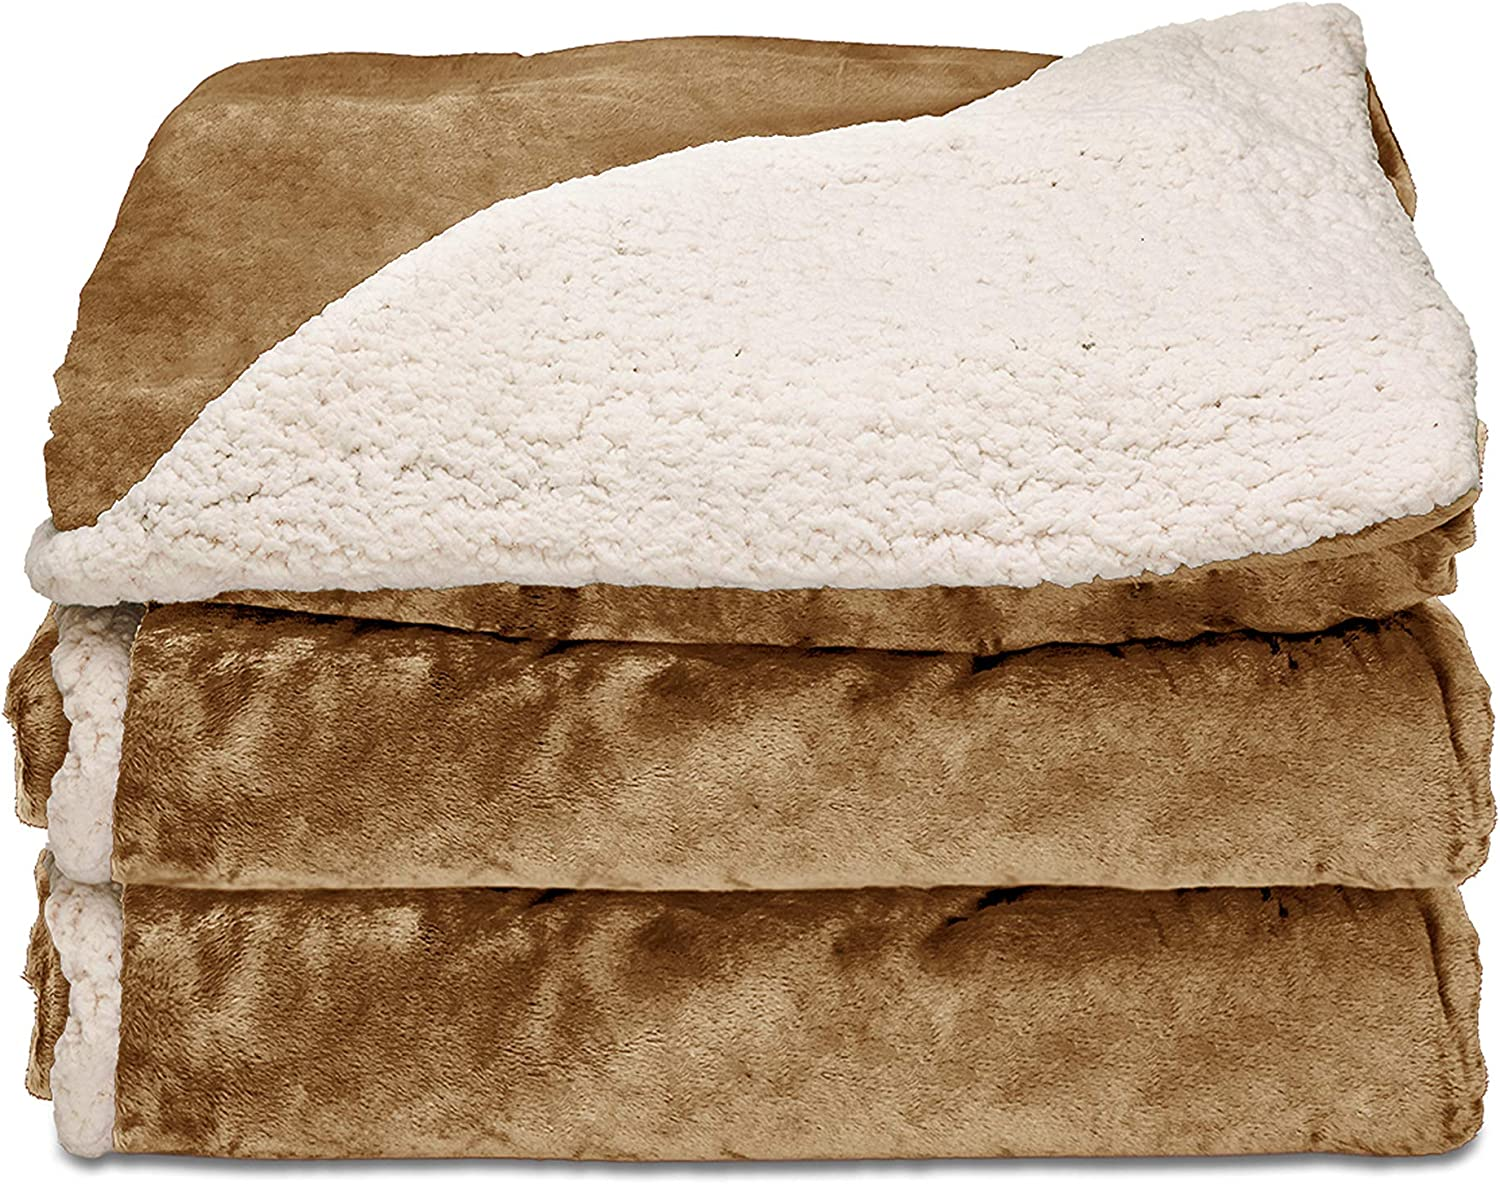 Sunbeam Heated Throw Blanket | Reversible Sherpa/Royal Mink, 3 Heat Settings, Honey: Home & Kitchen